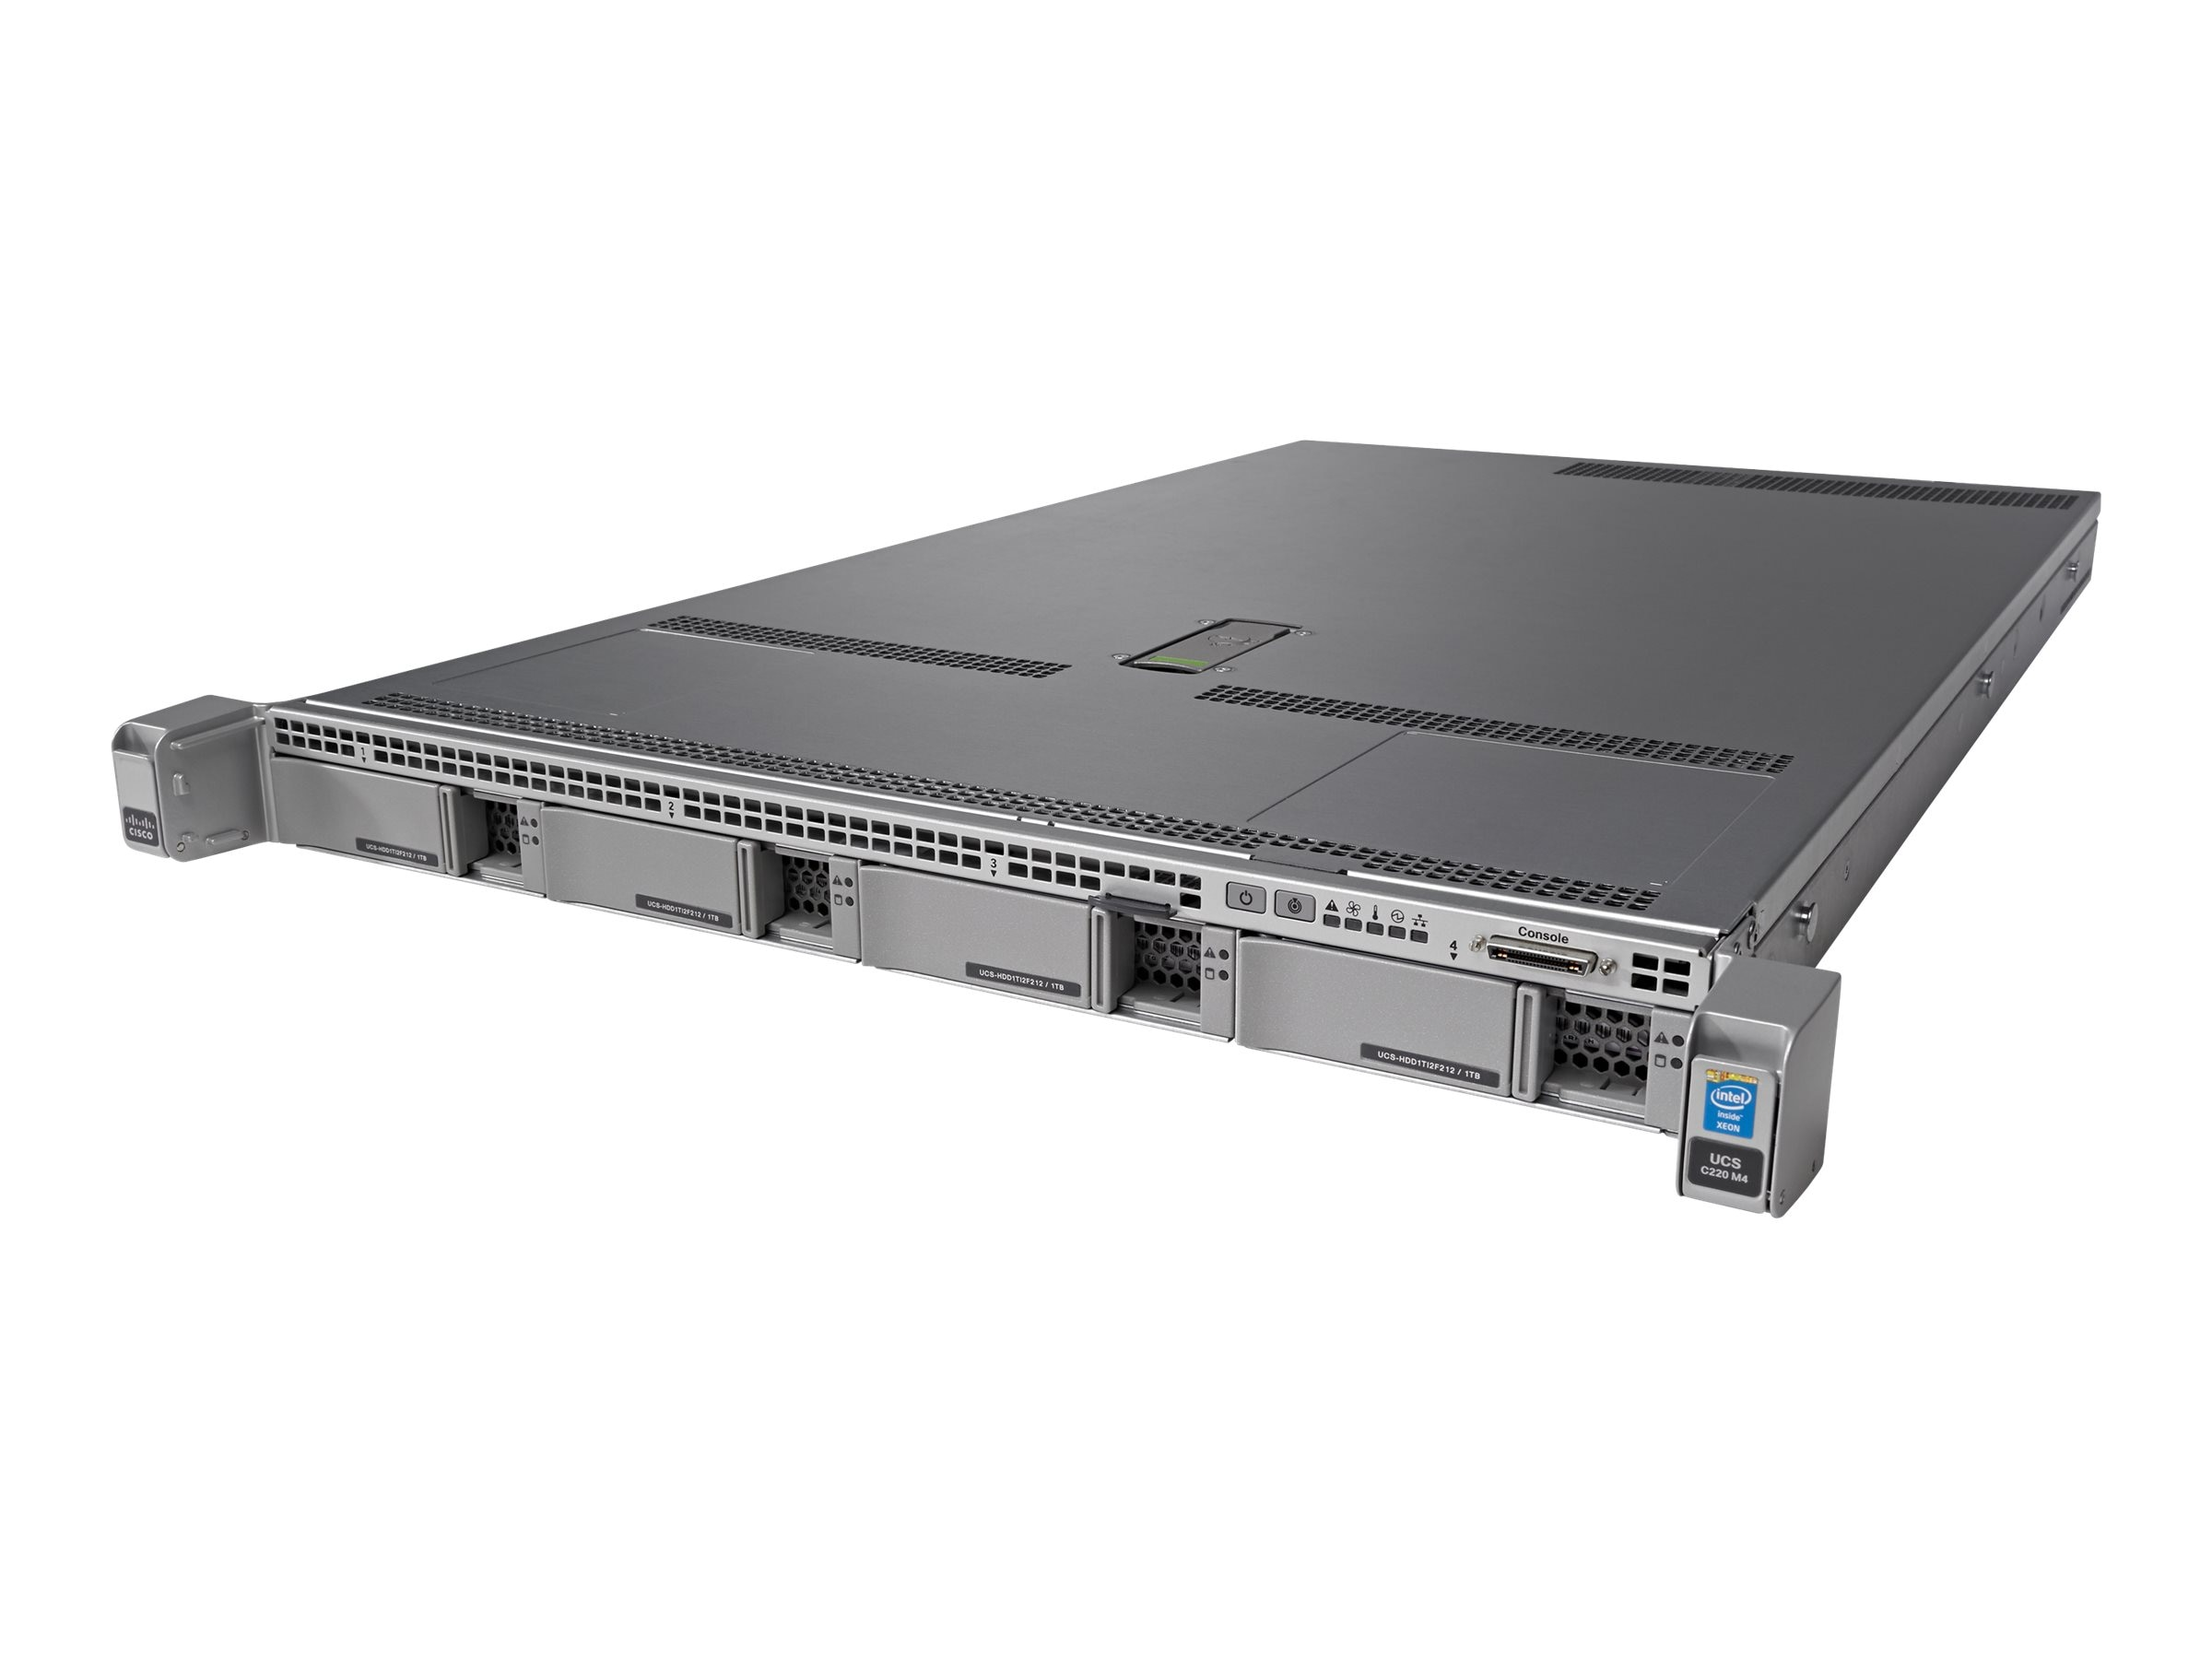 Cisco UCS SP8 C220 M4 Entry Xeon E5-2609 v3 64GB